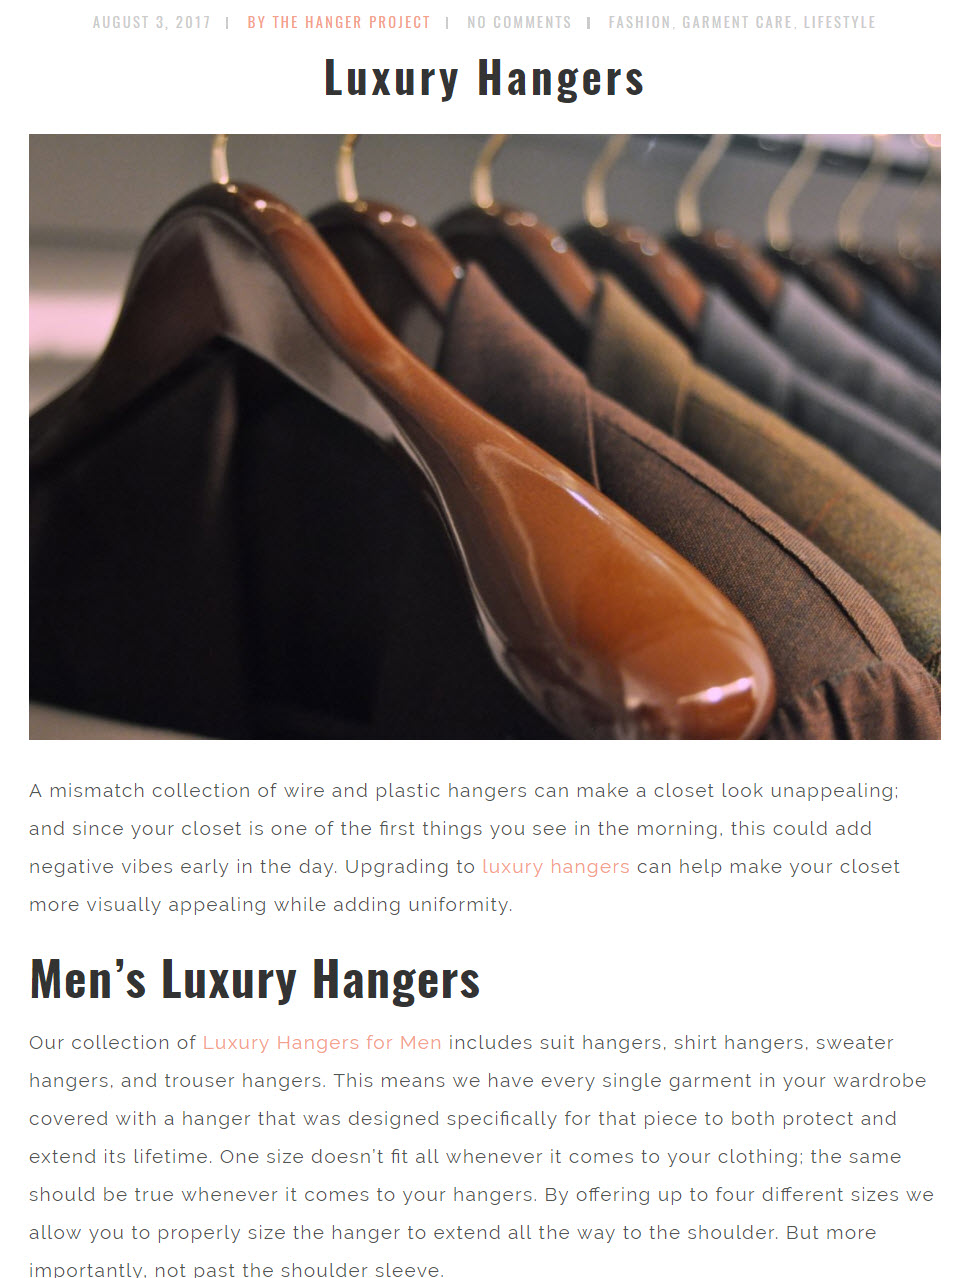 The Hanger Project Blog links in a controlled way to relevant product categories.